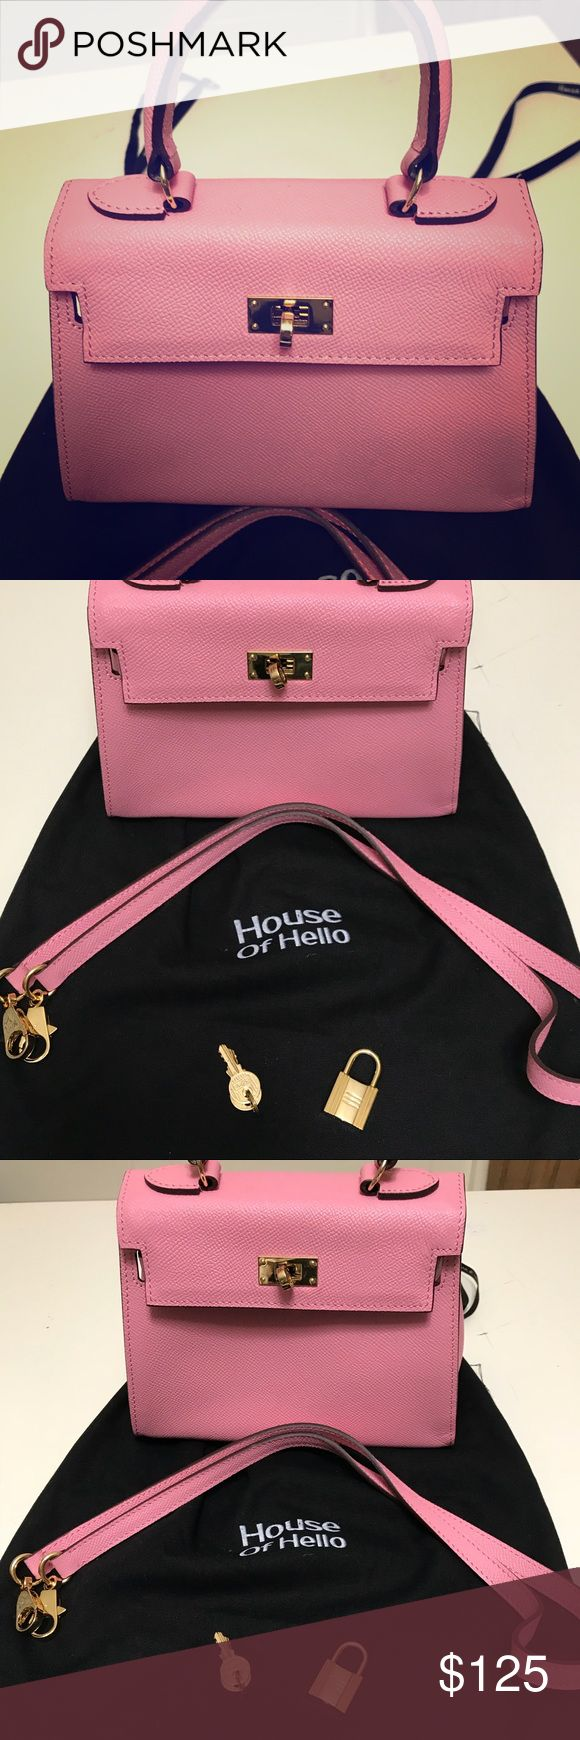 House of Hello -Kelly Bag House of Hello Kelly Bag - I'm not a Hermes - authentic and new. Comes with dust bag, strap , and lock & key House of Hello Bags